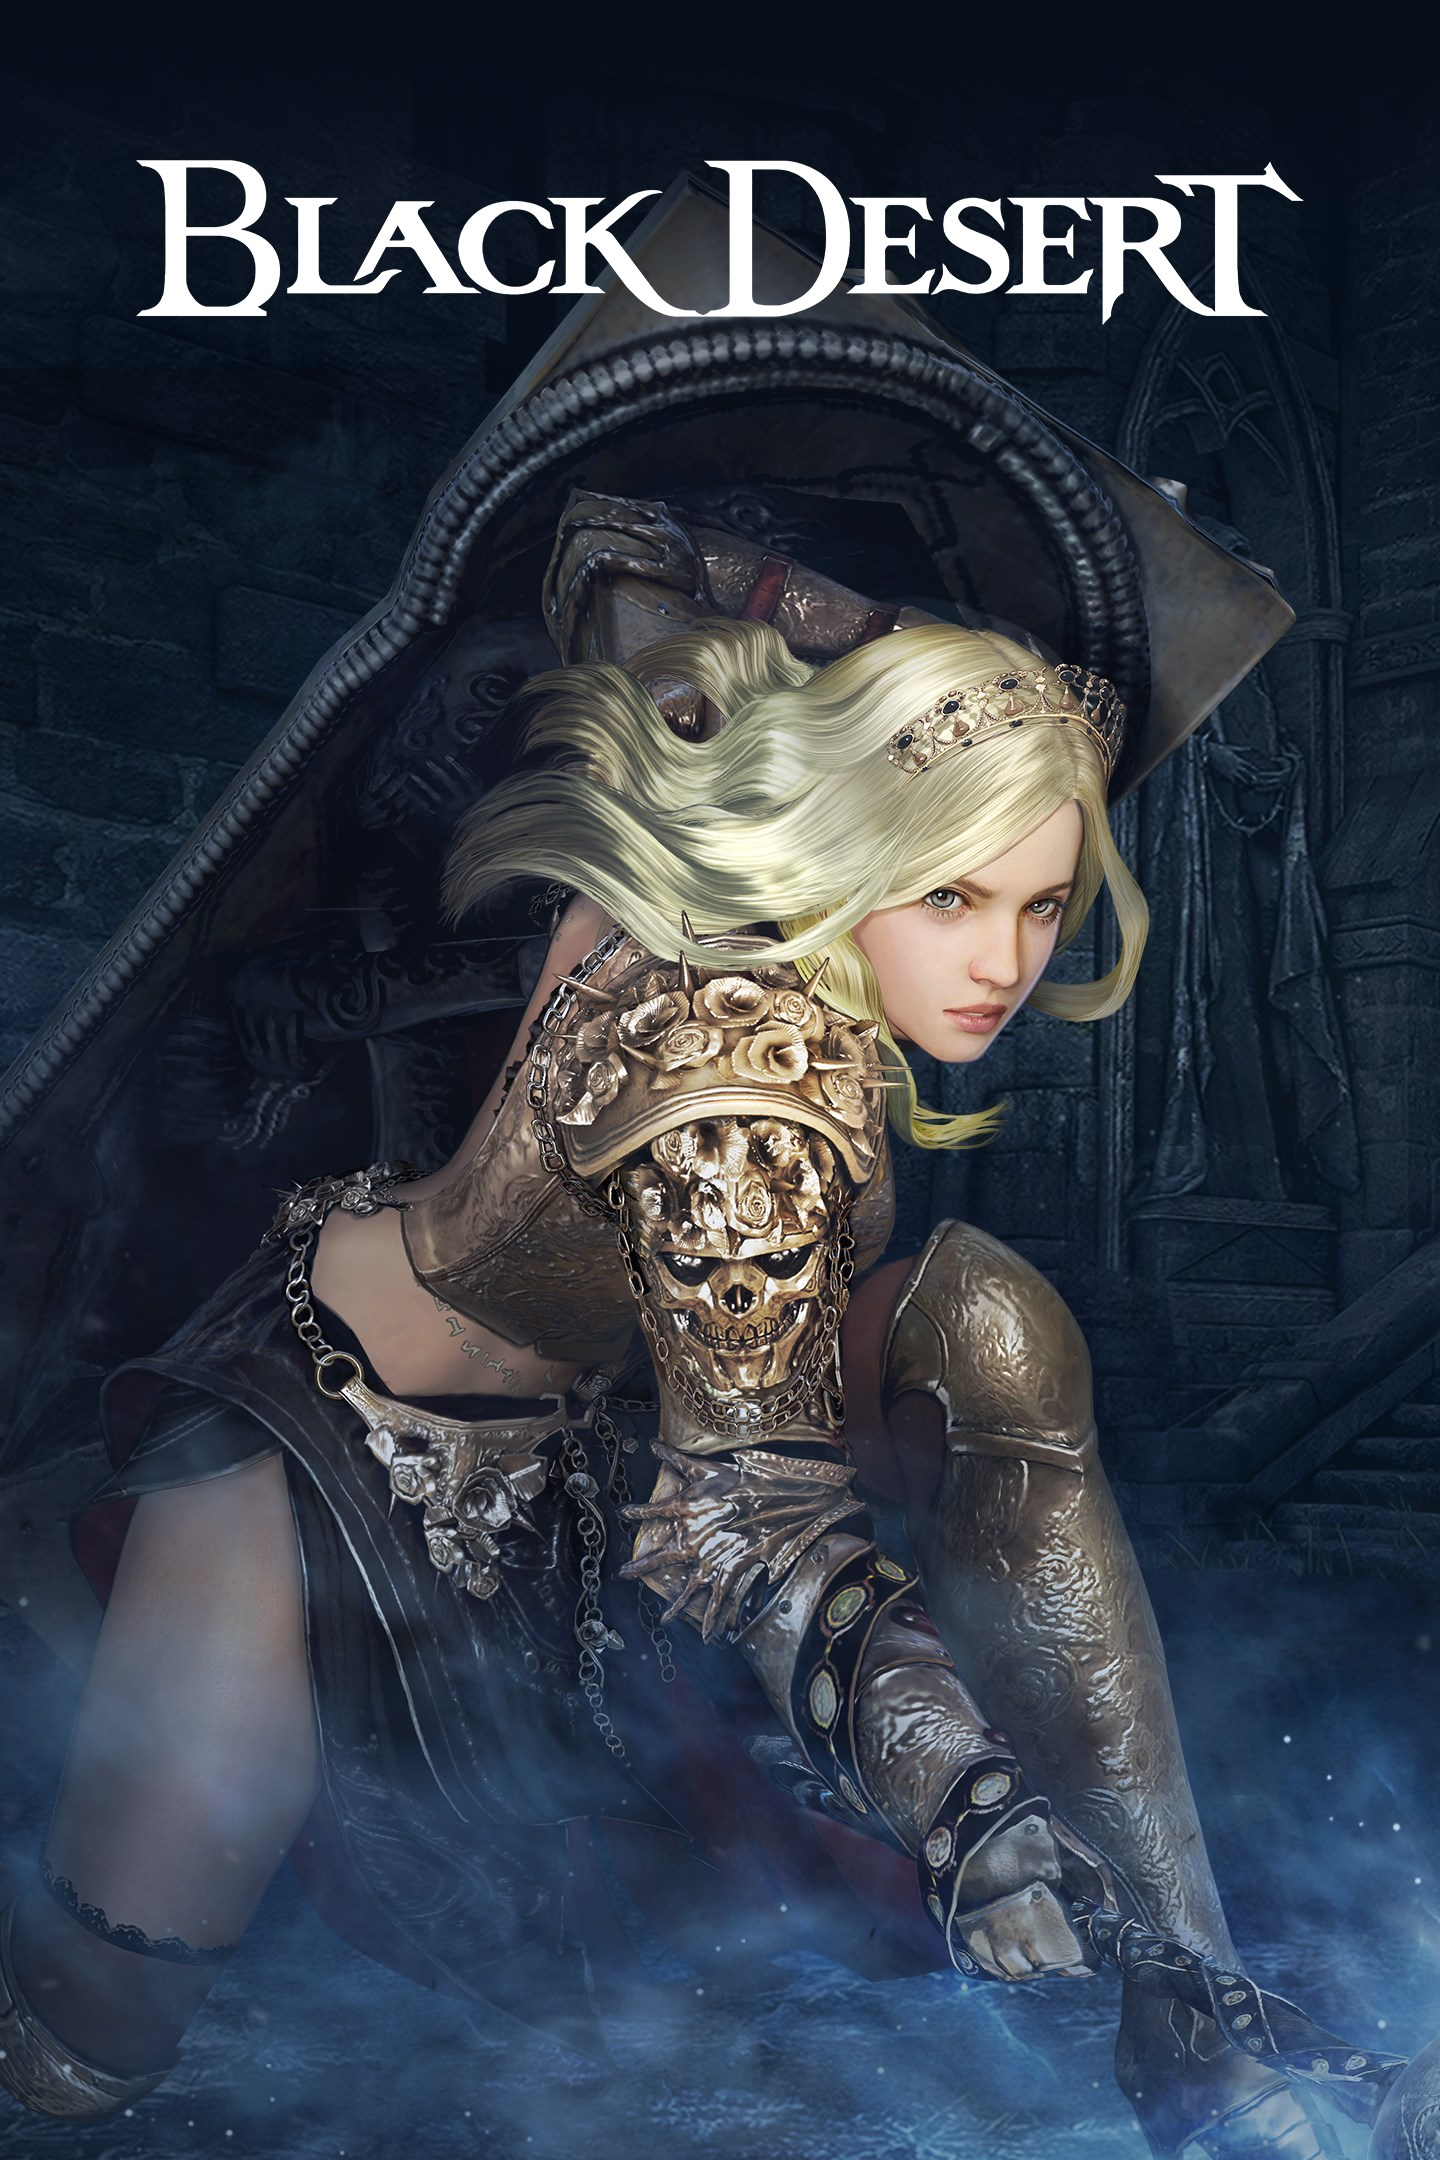 Black Desert, A blonde warrior in armor throws a weapon to the ground.